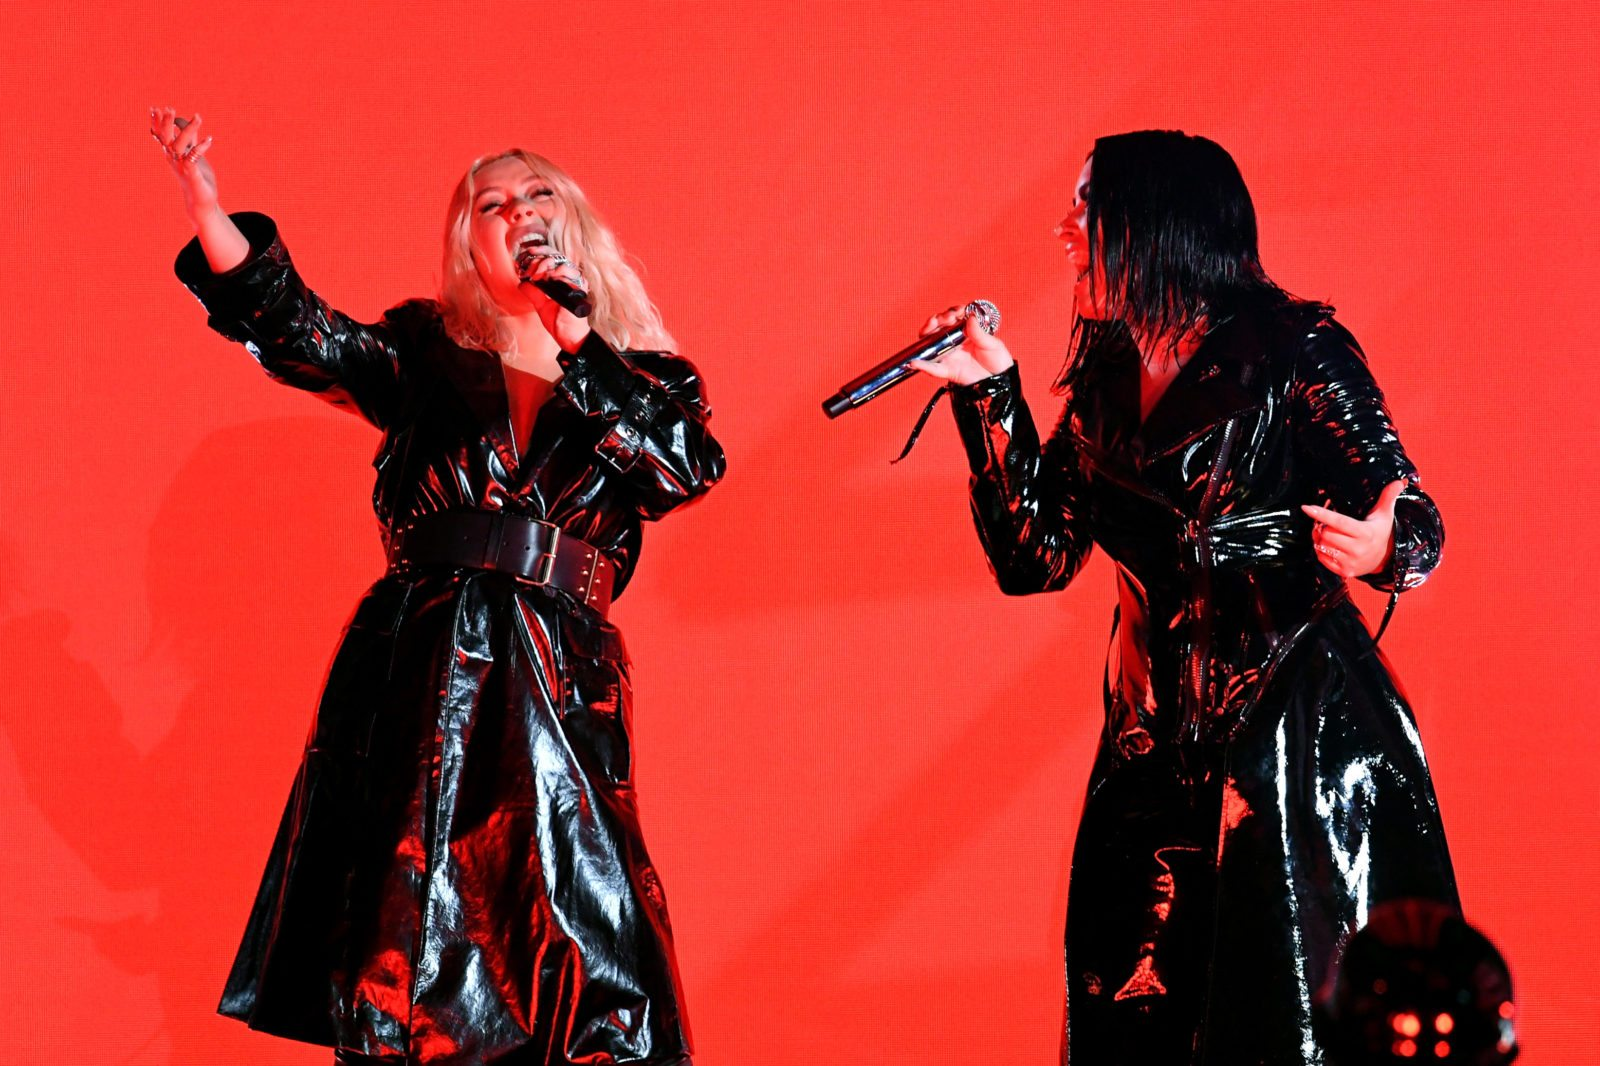 Christina Aguilera (L) and Demi Lovato perform onstage during the 2018 Billboard Music Awards at MGM Grand Garden Arena on May 20, 2018 in Las Vegas, Nevada.  (Photo by Kevin Winter/Getty Images)